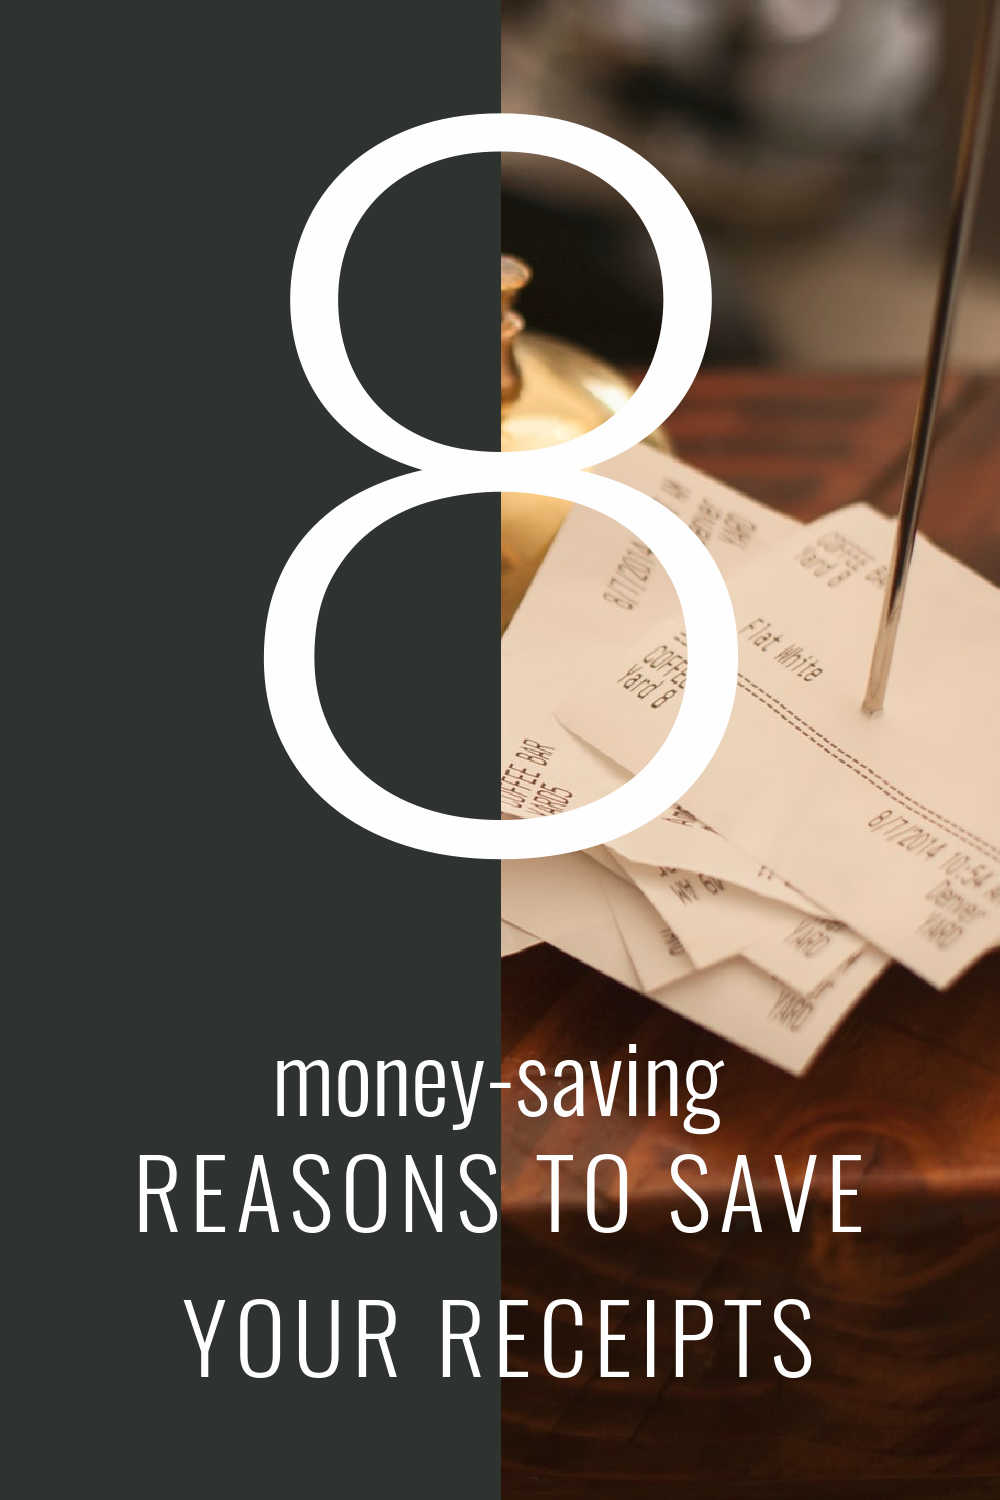 why save your receipts